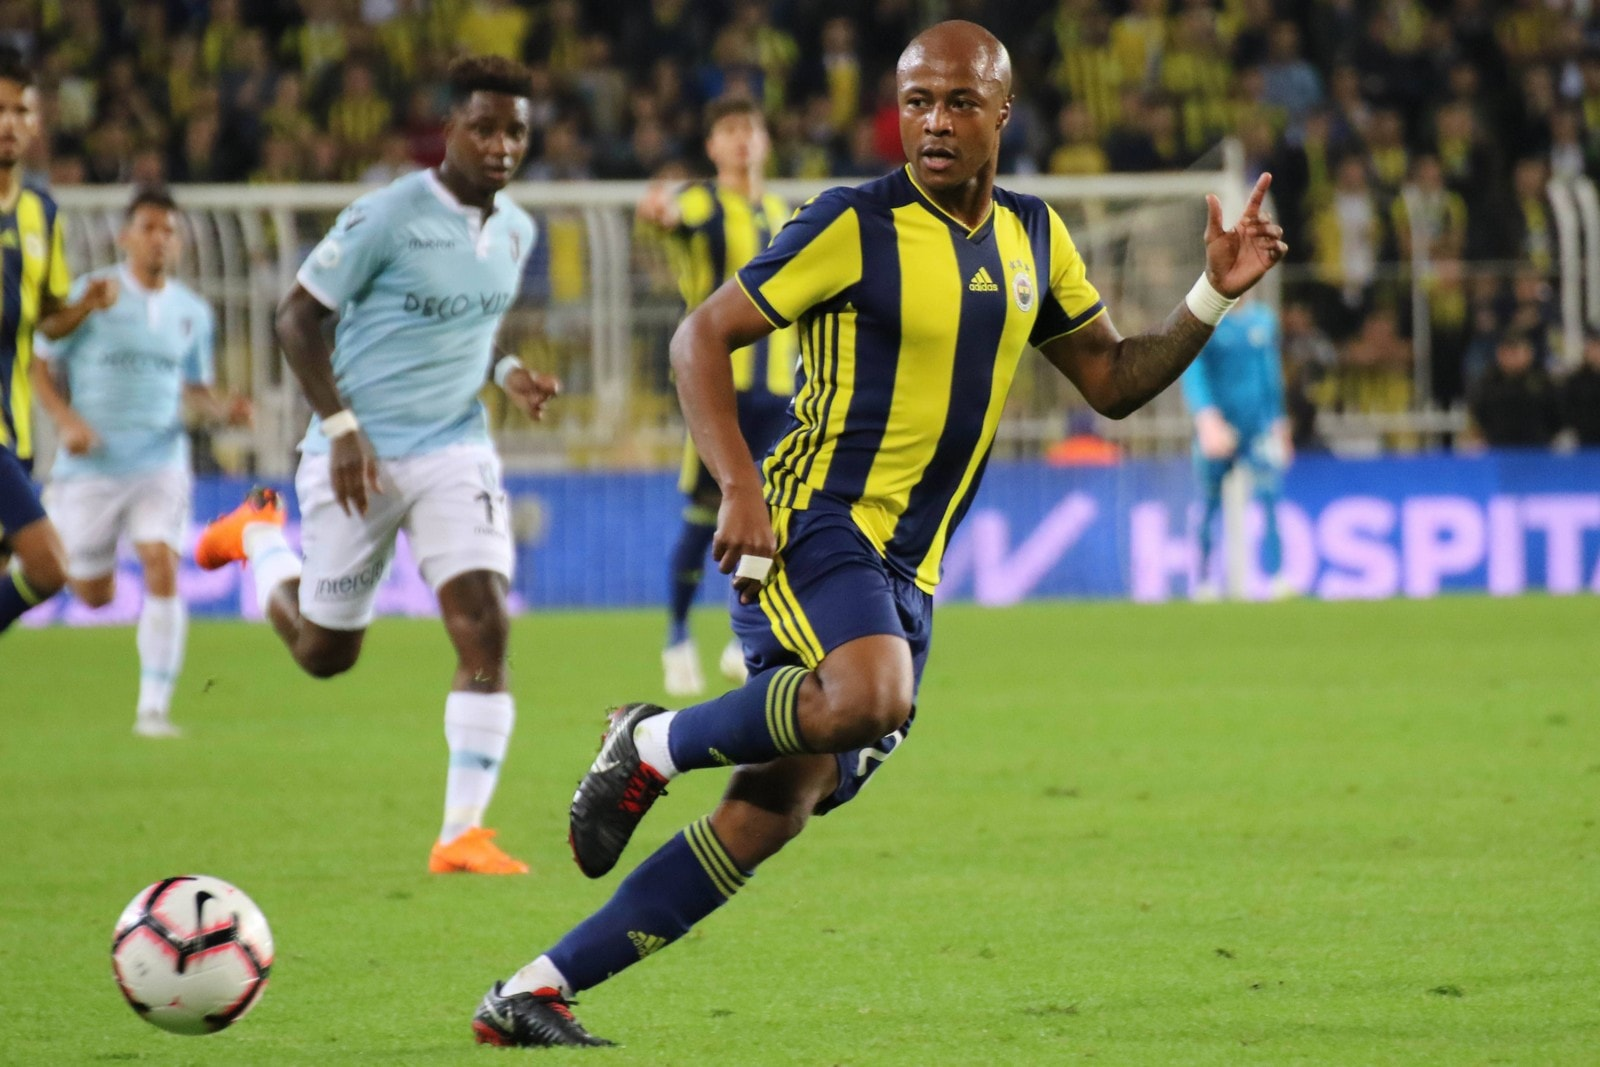 Fenerbahce vs Zenit Football Predictions 12/02/2019